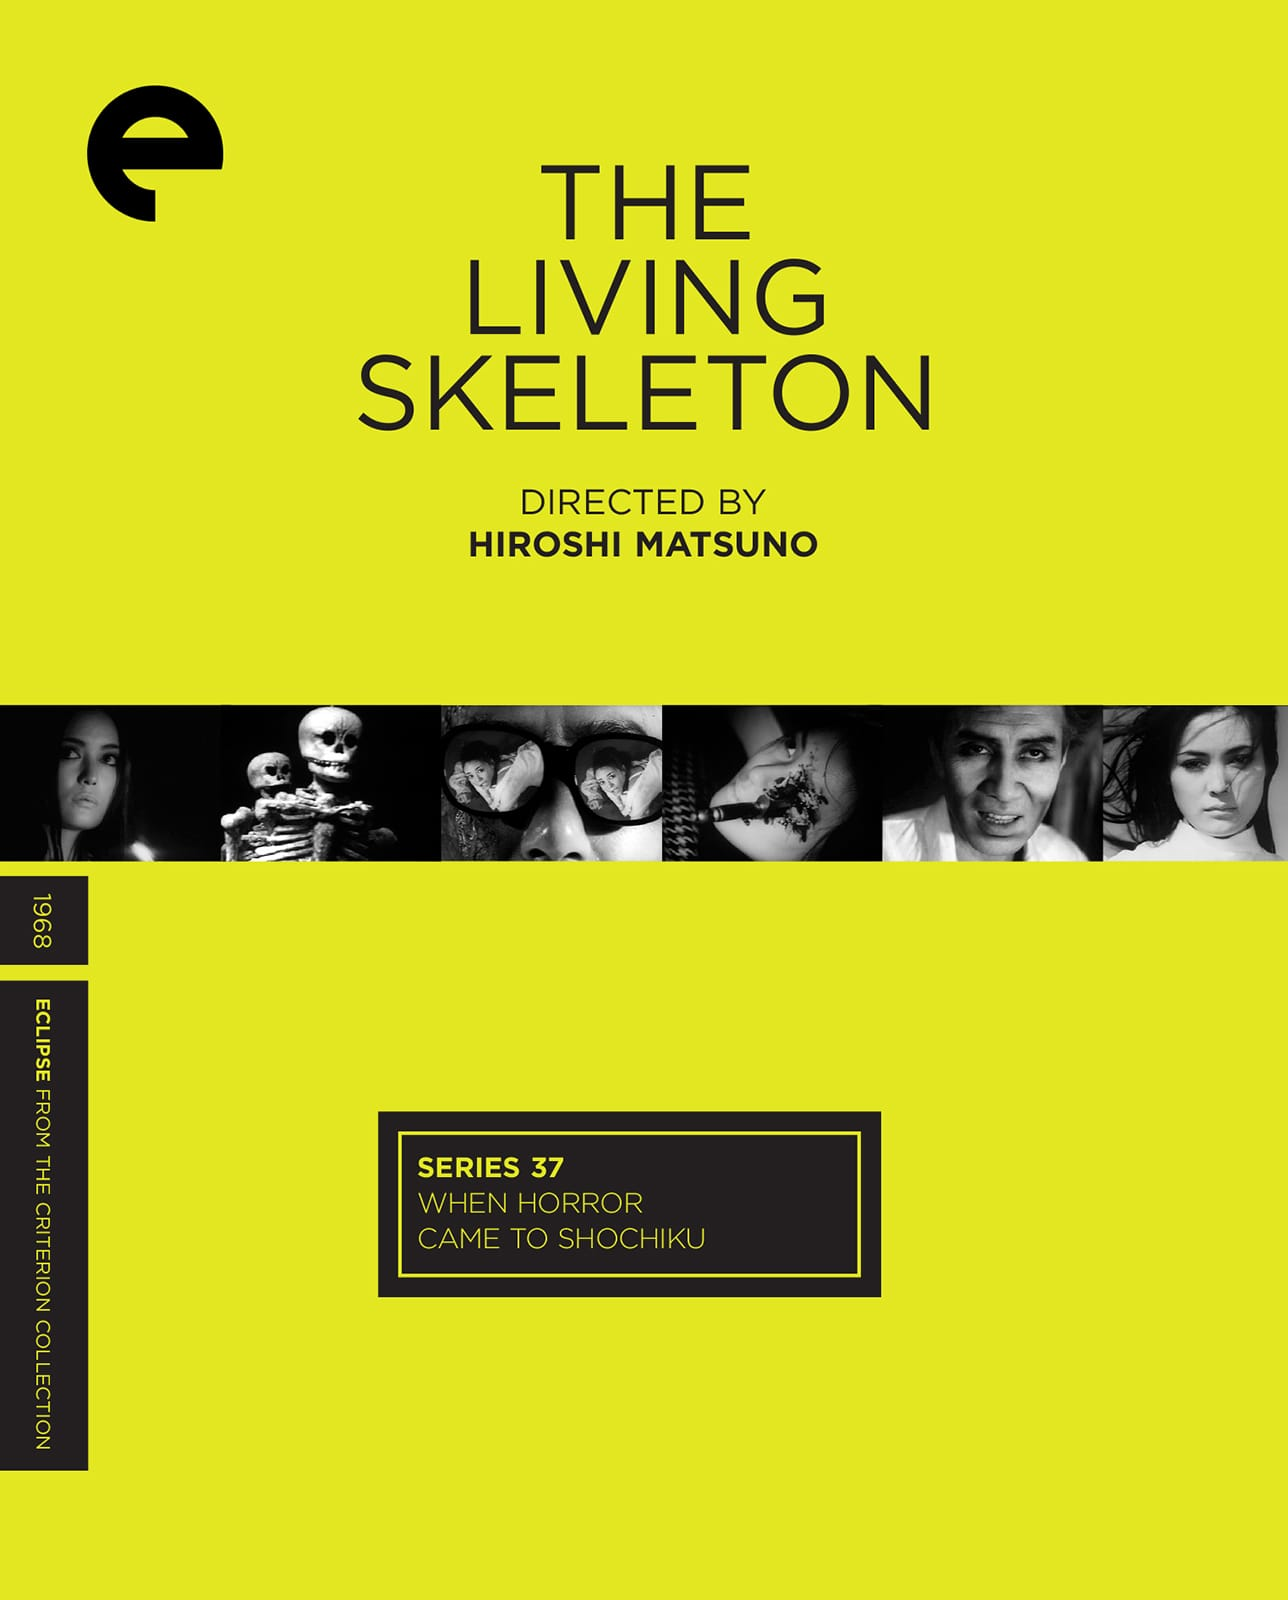 The Living Skeleton